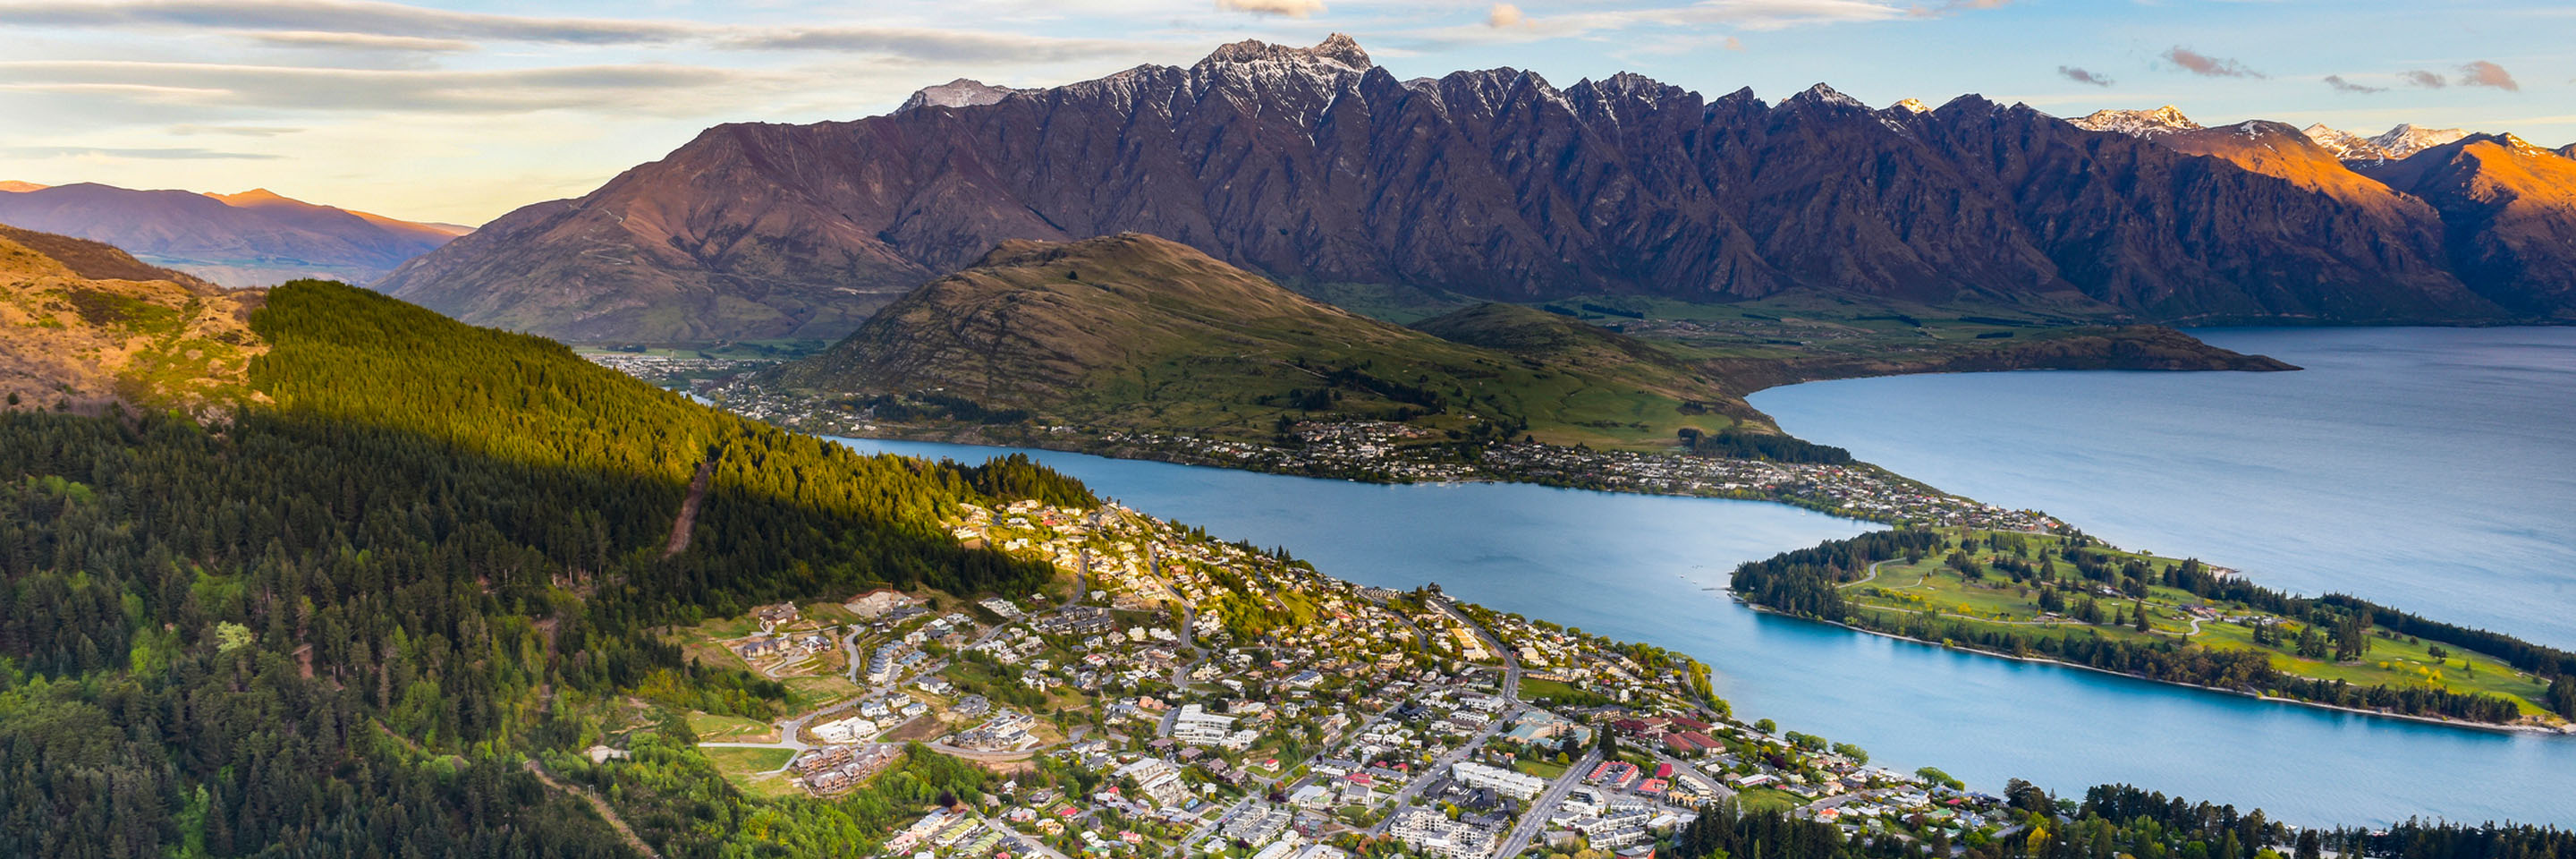 Queenstown New Zealand guided tours